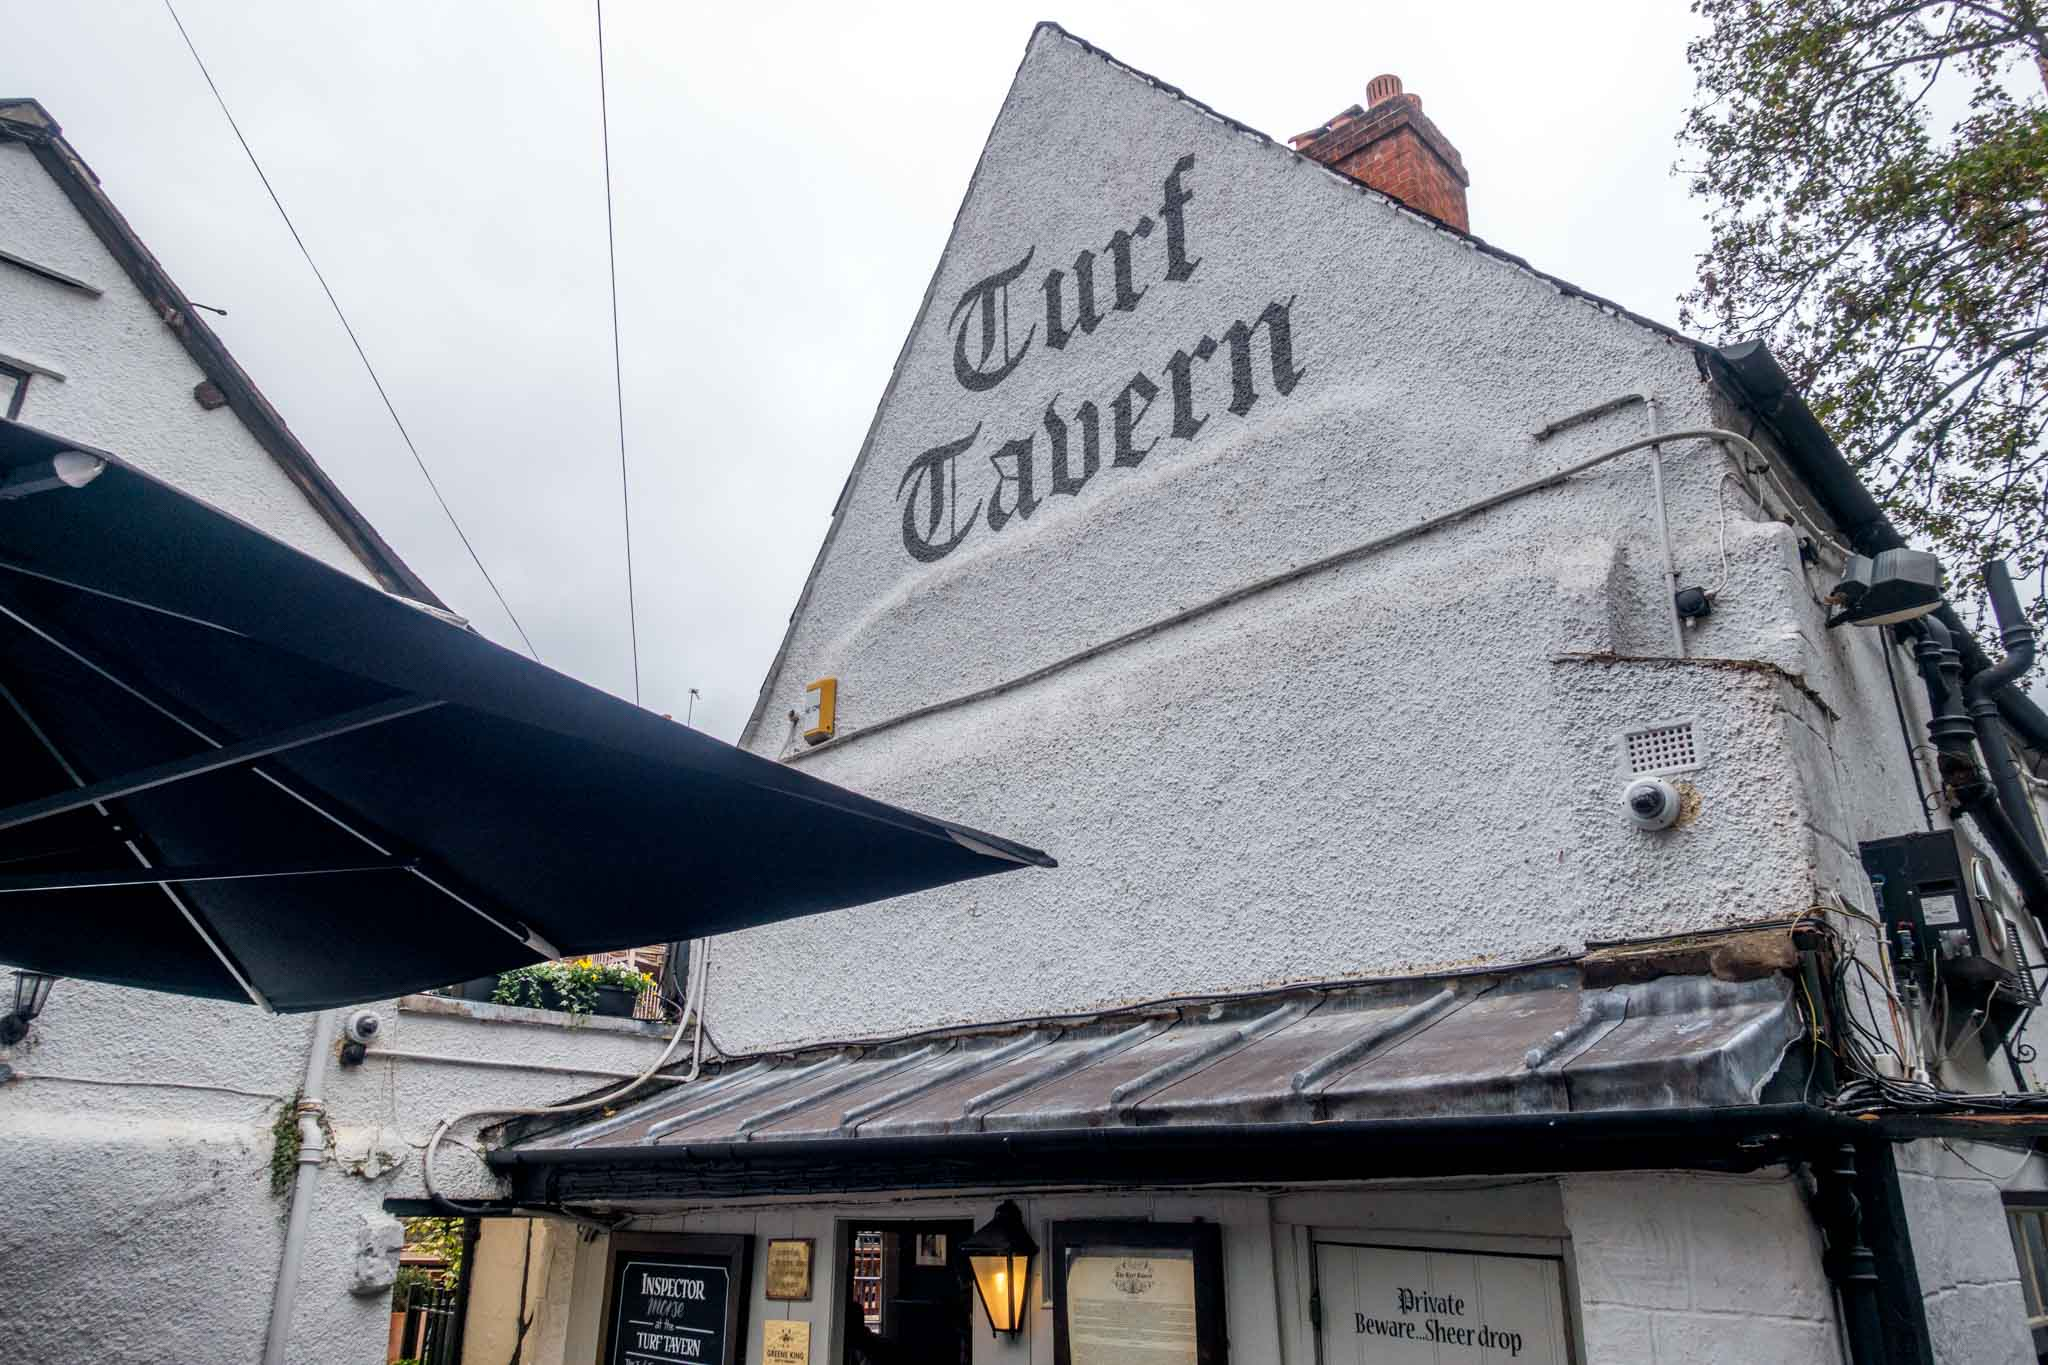 The historic Turf Tavern is a highlight of Oxford sightseeing